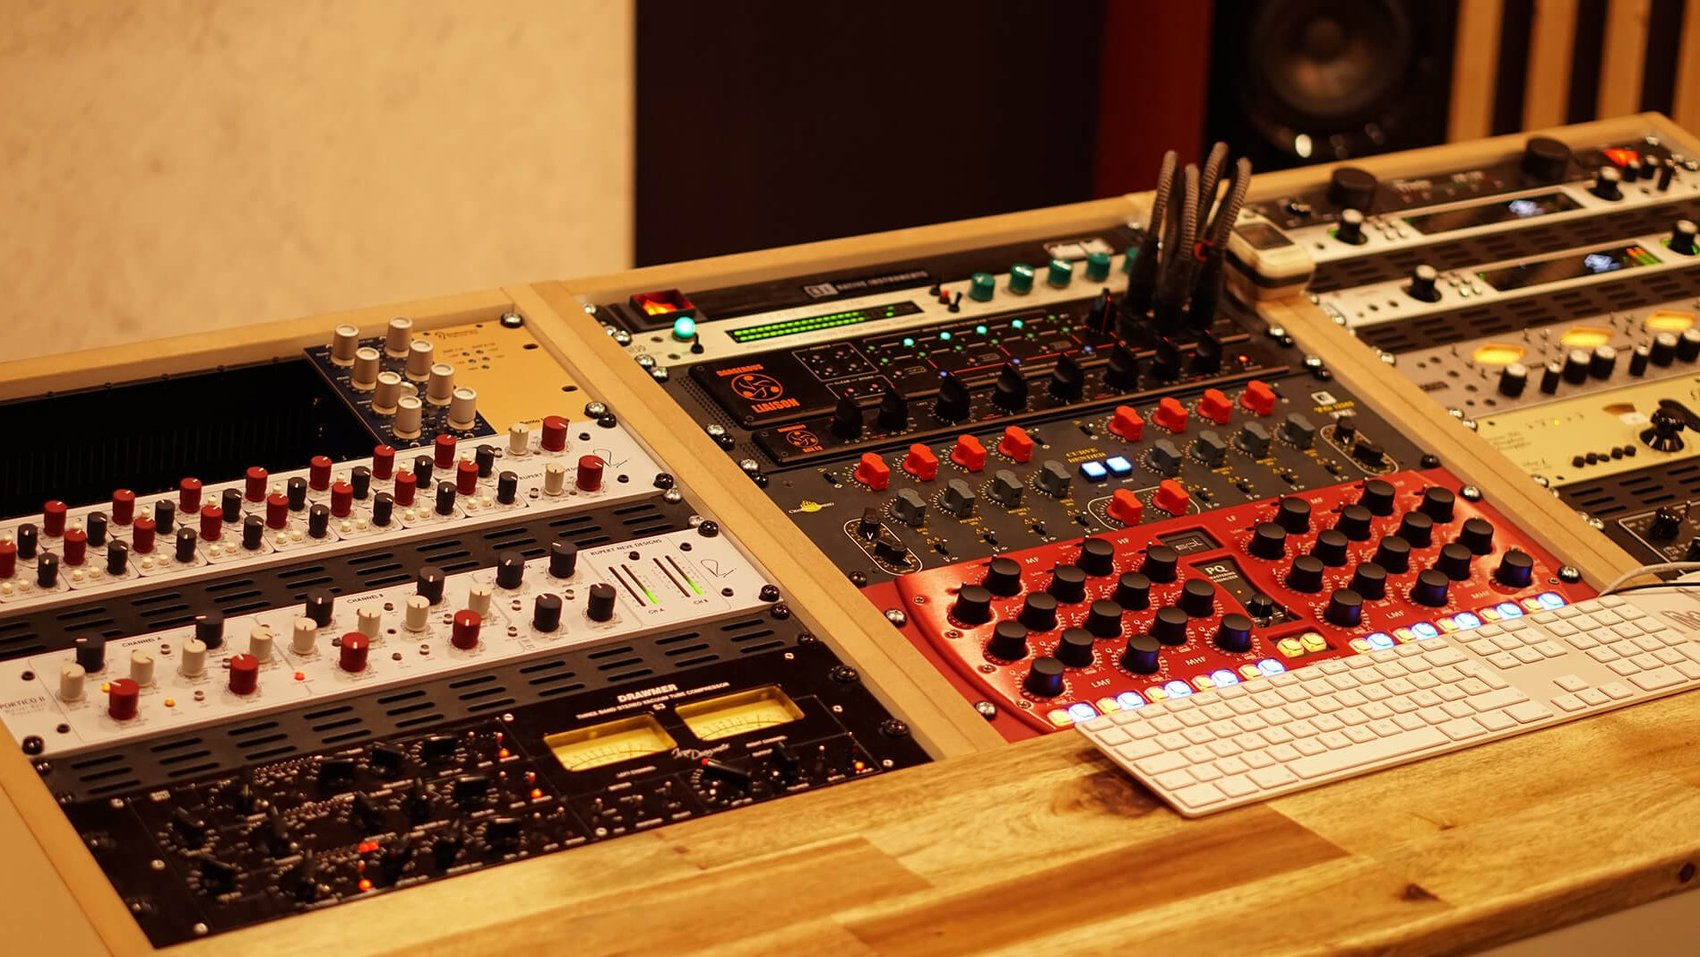 Flexible and constantly expanded: The mastering components in the Soundation Studio